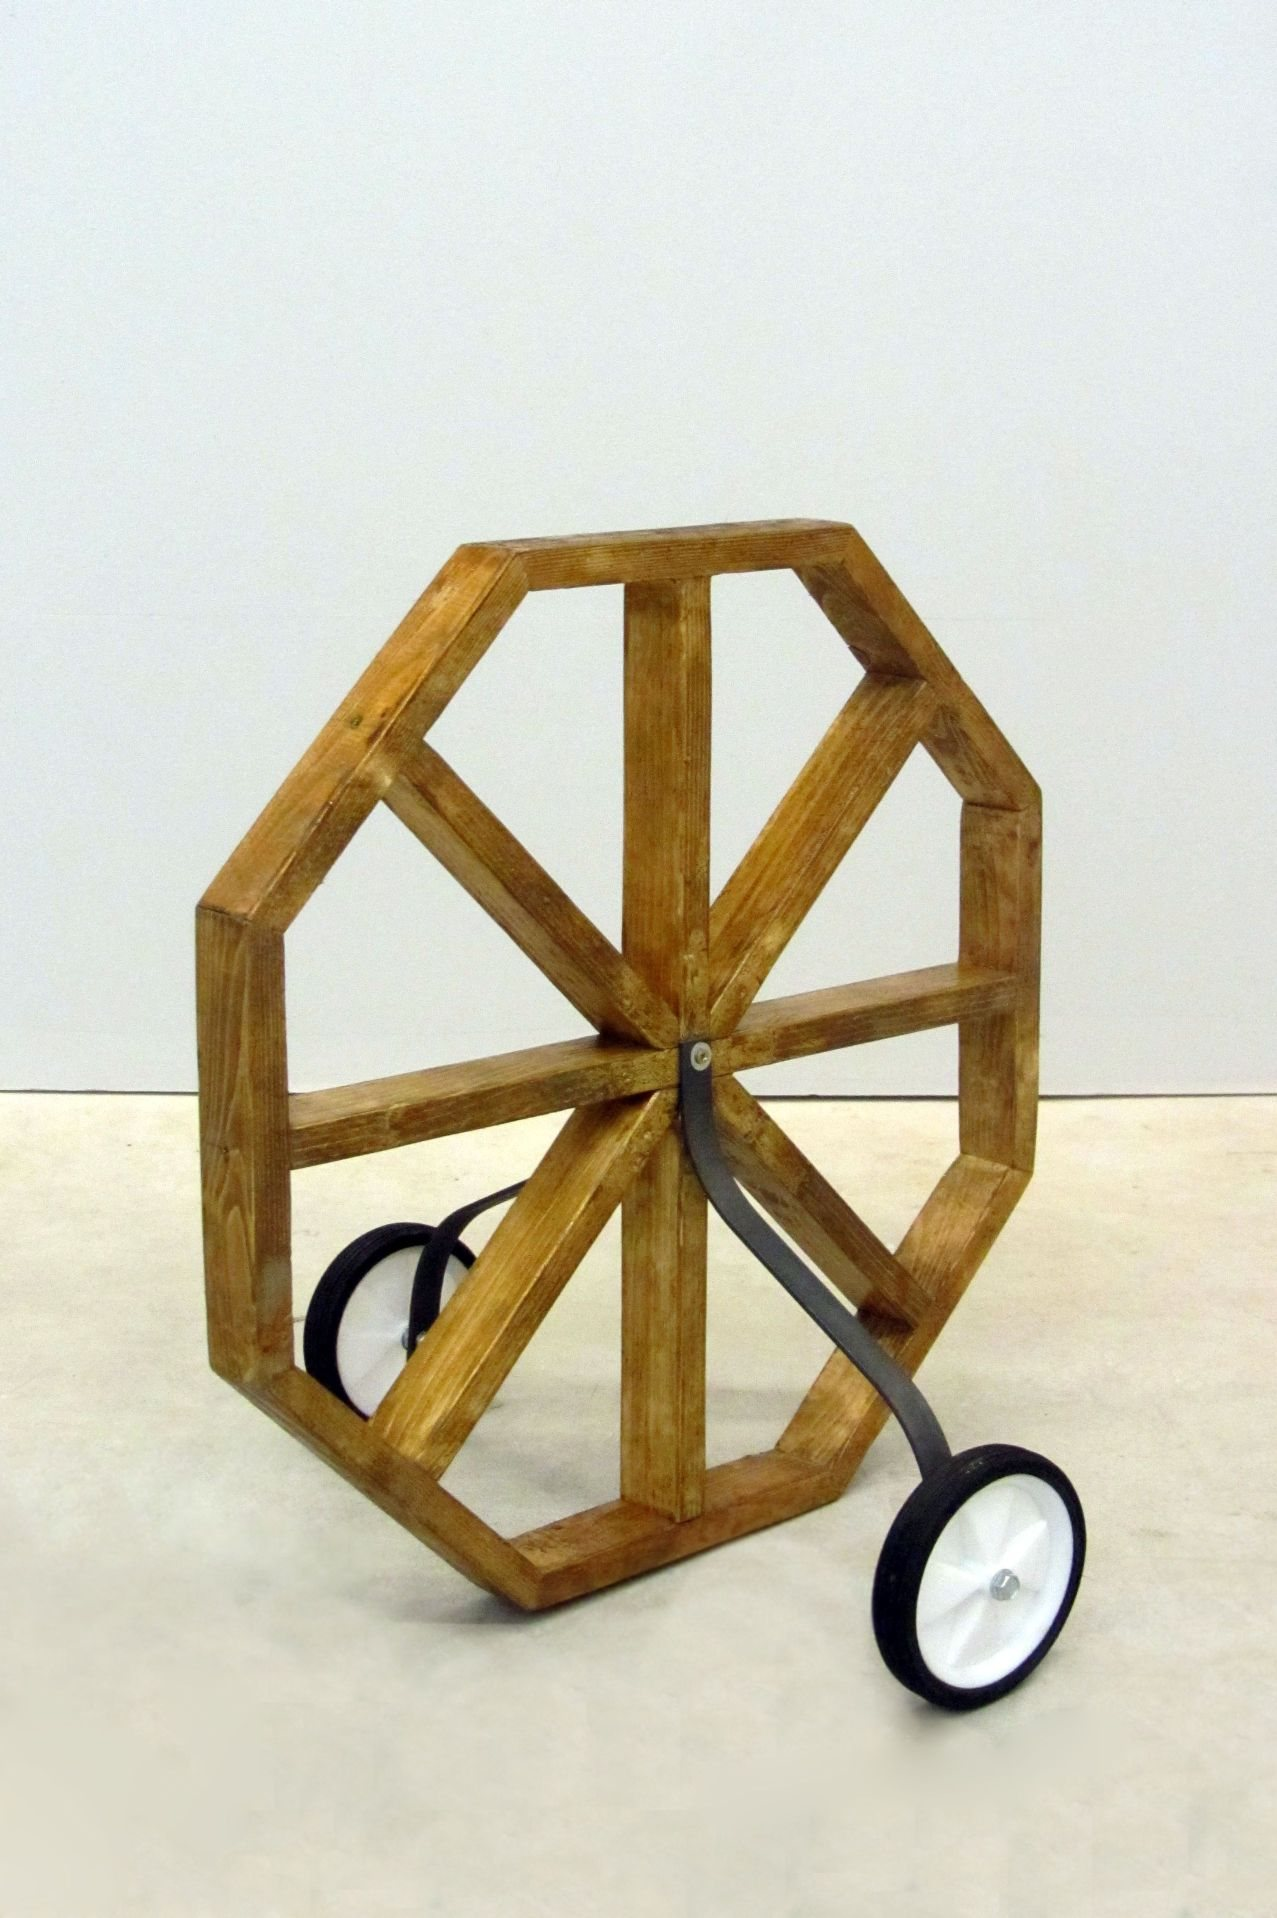 Hannes Nienhüser: Worry Wheel (2014)